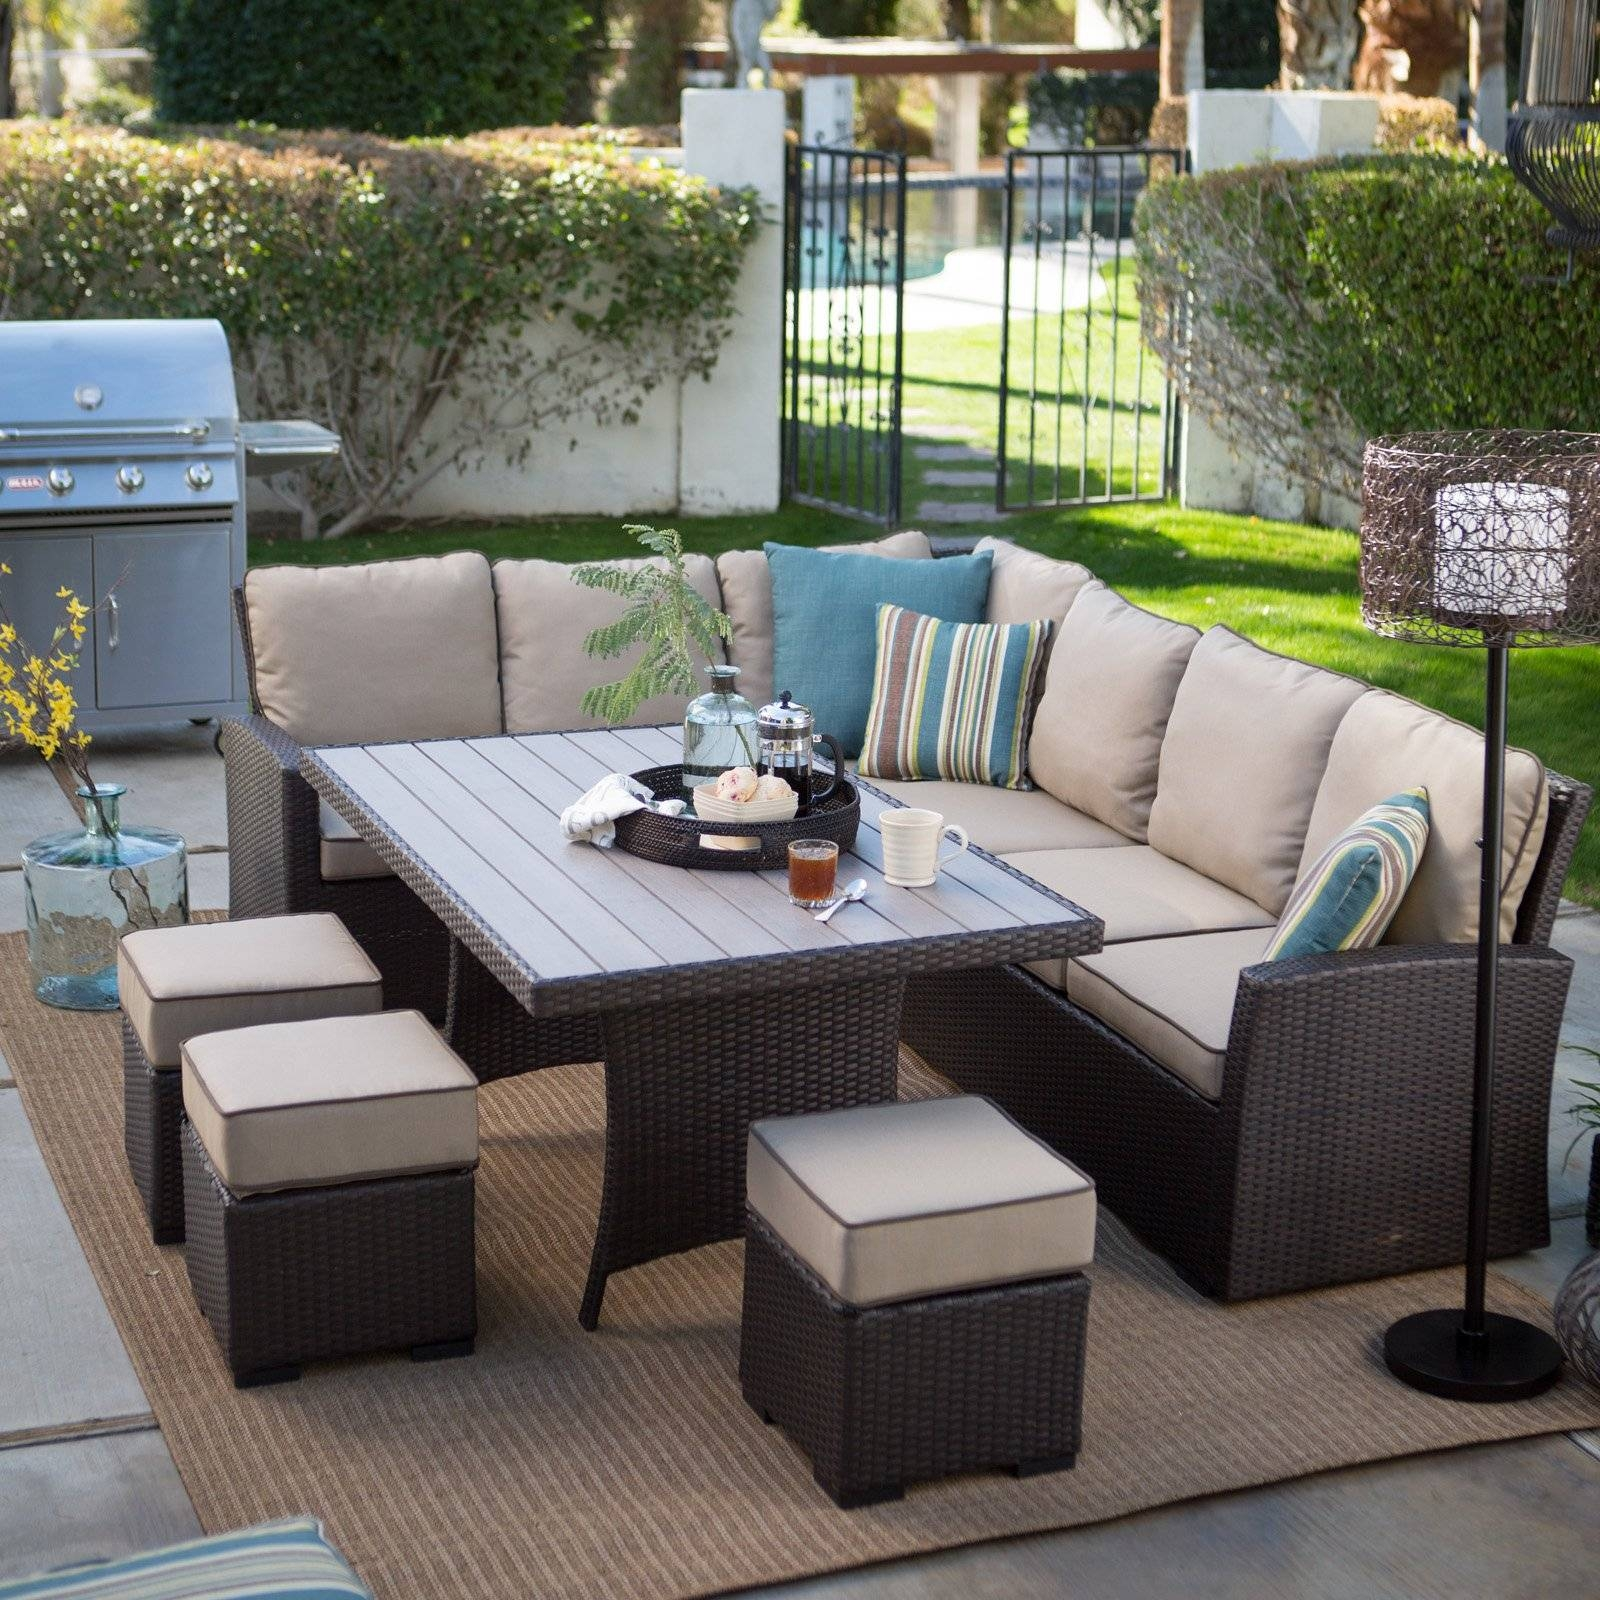 Belham Living Monticello All-Weather Wicker Sofa Sectional Patio inside Sofa Table Chairs (Image 2 of 30)